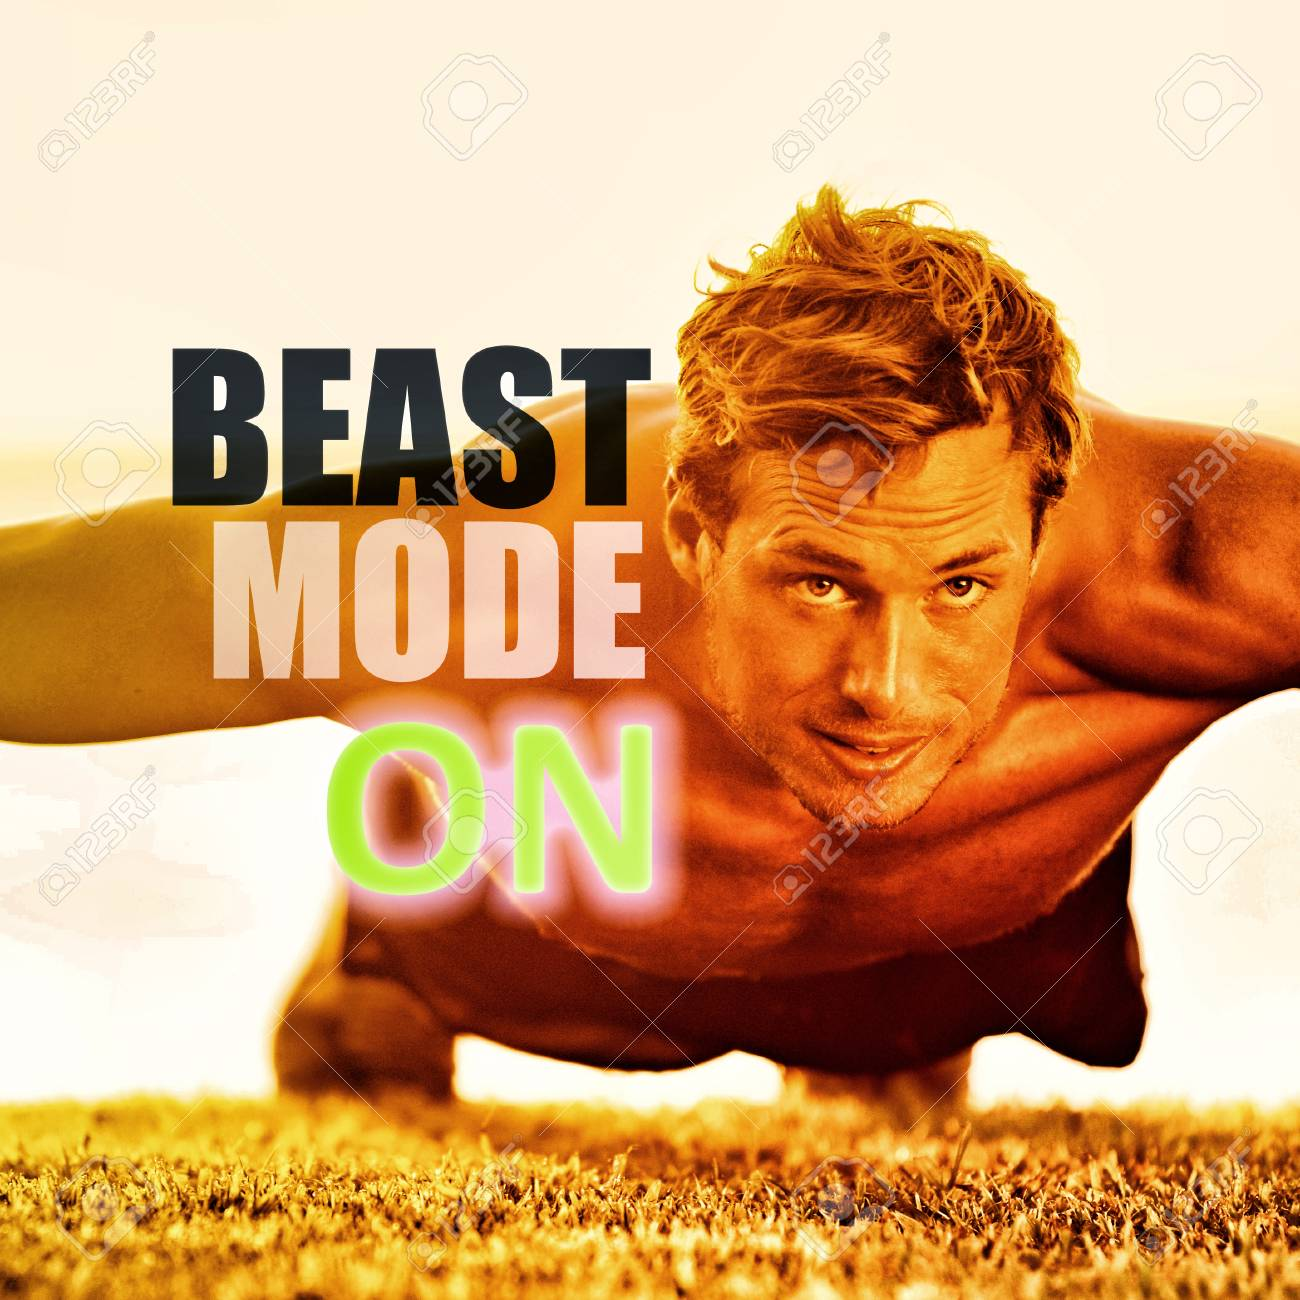 Fitness Man Working Out Exercise At Gym Inspirational Quotes